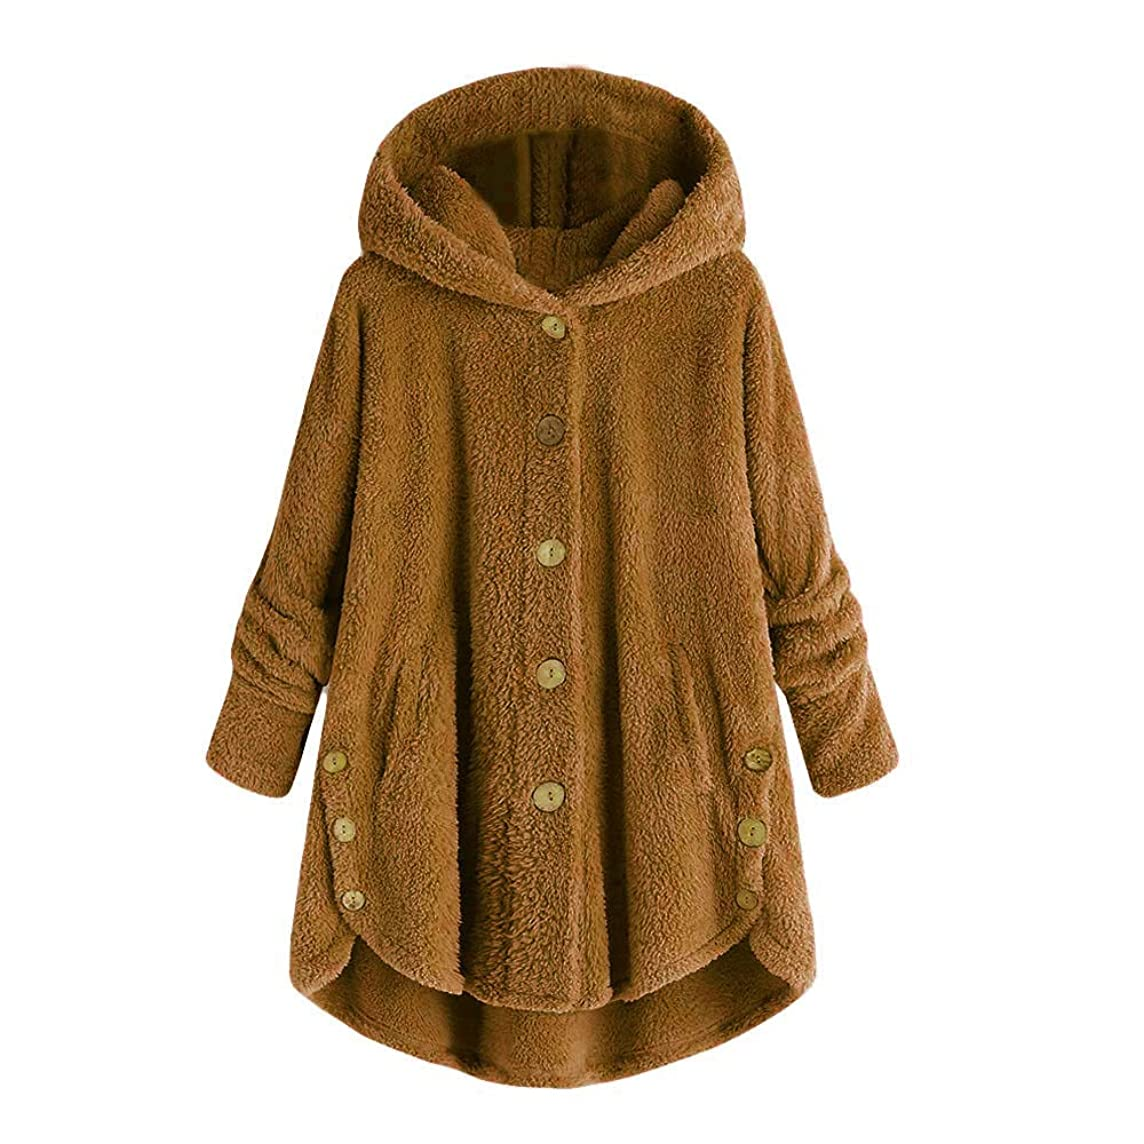 Fashion Button Coat Fluffy Tail Tops Hooded Pullover Loose Sweater Women